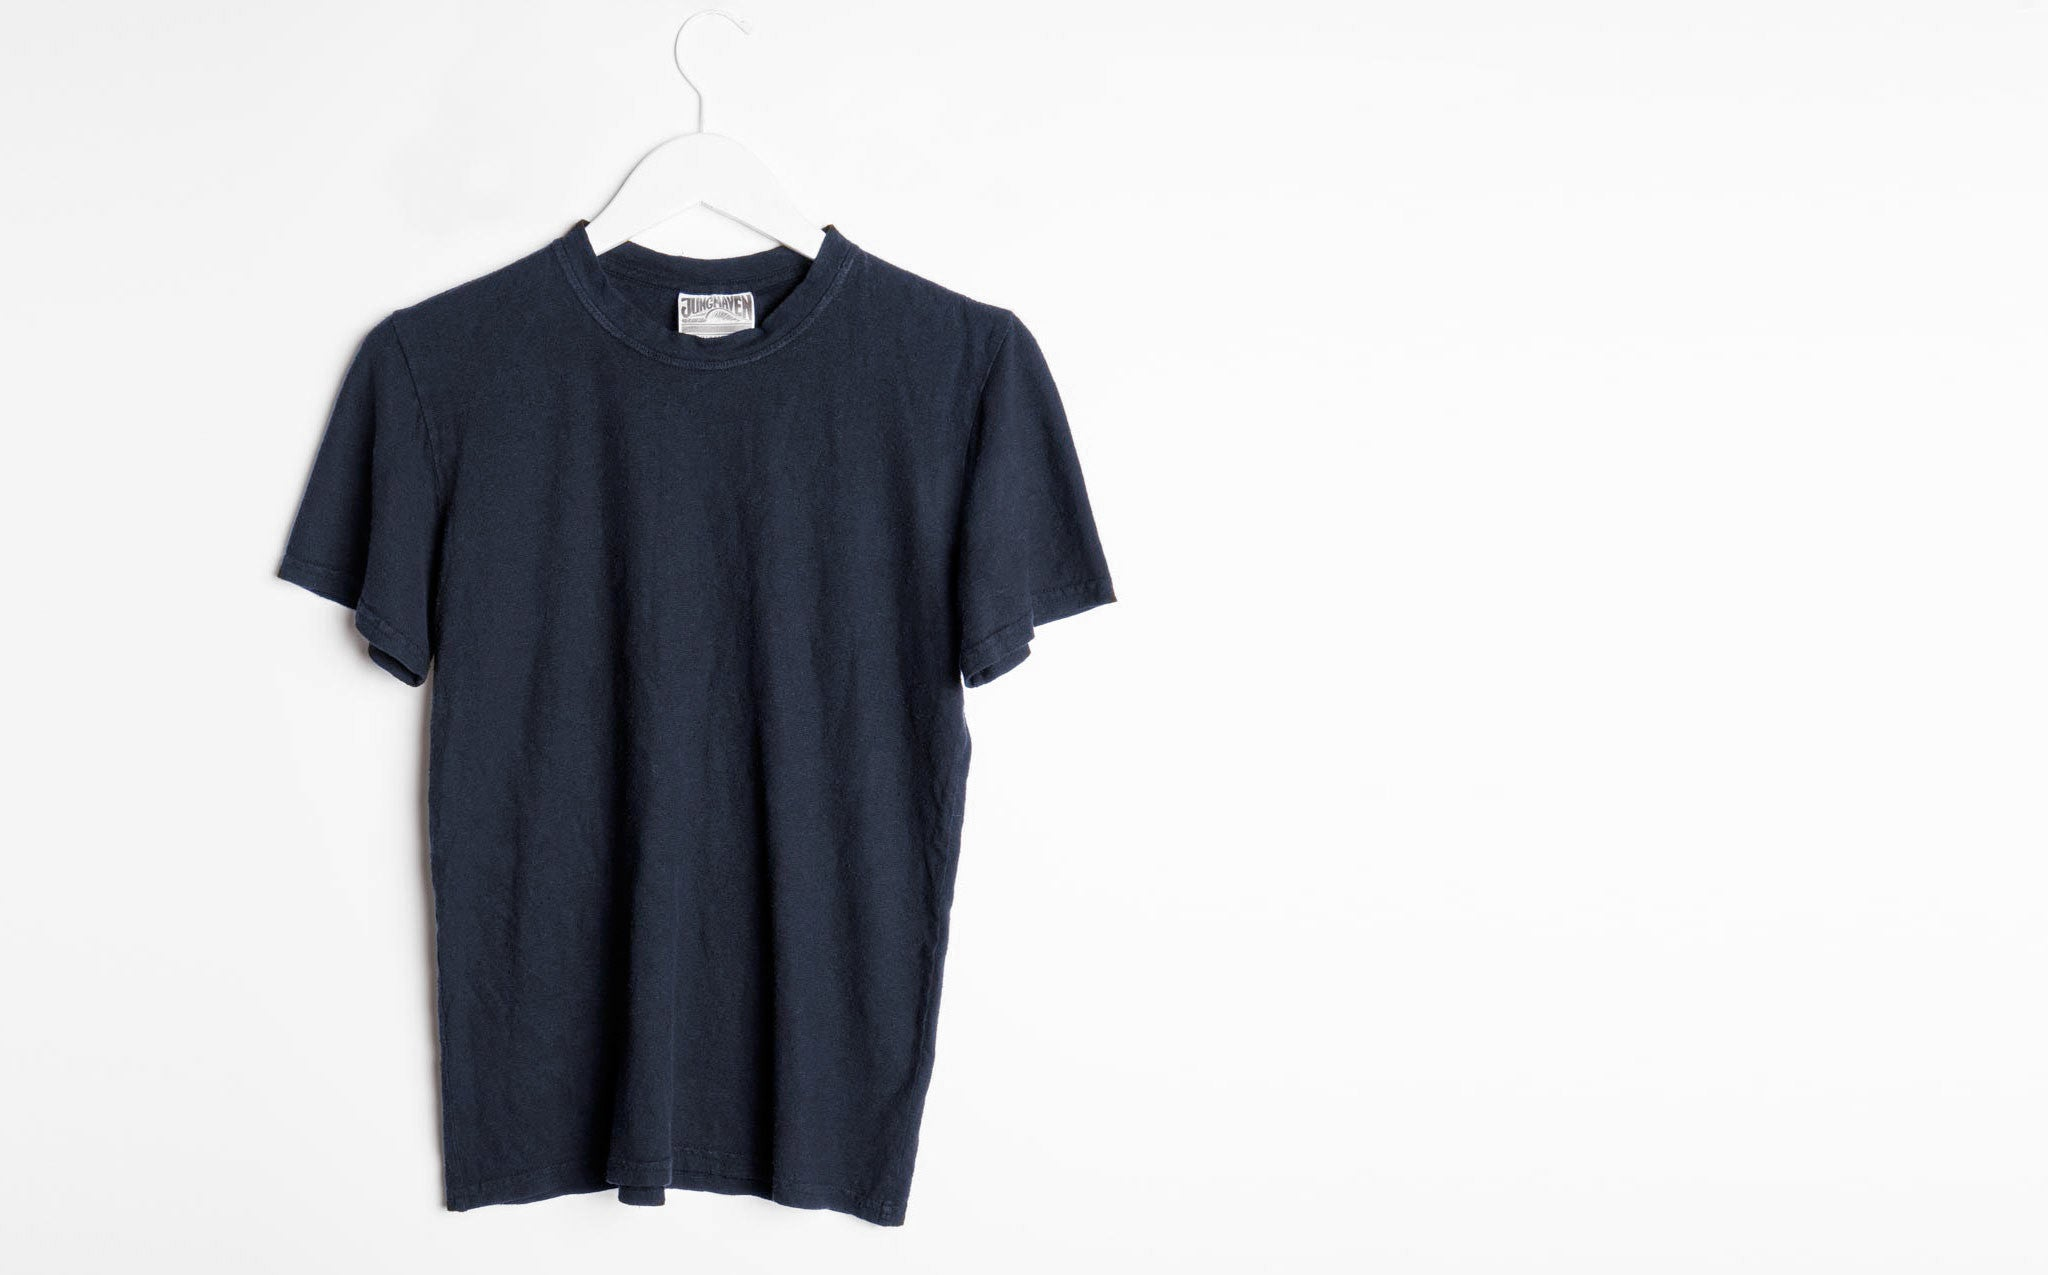 Jungmaven Navy Baja Product T-shirt sizing xs